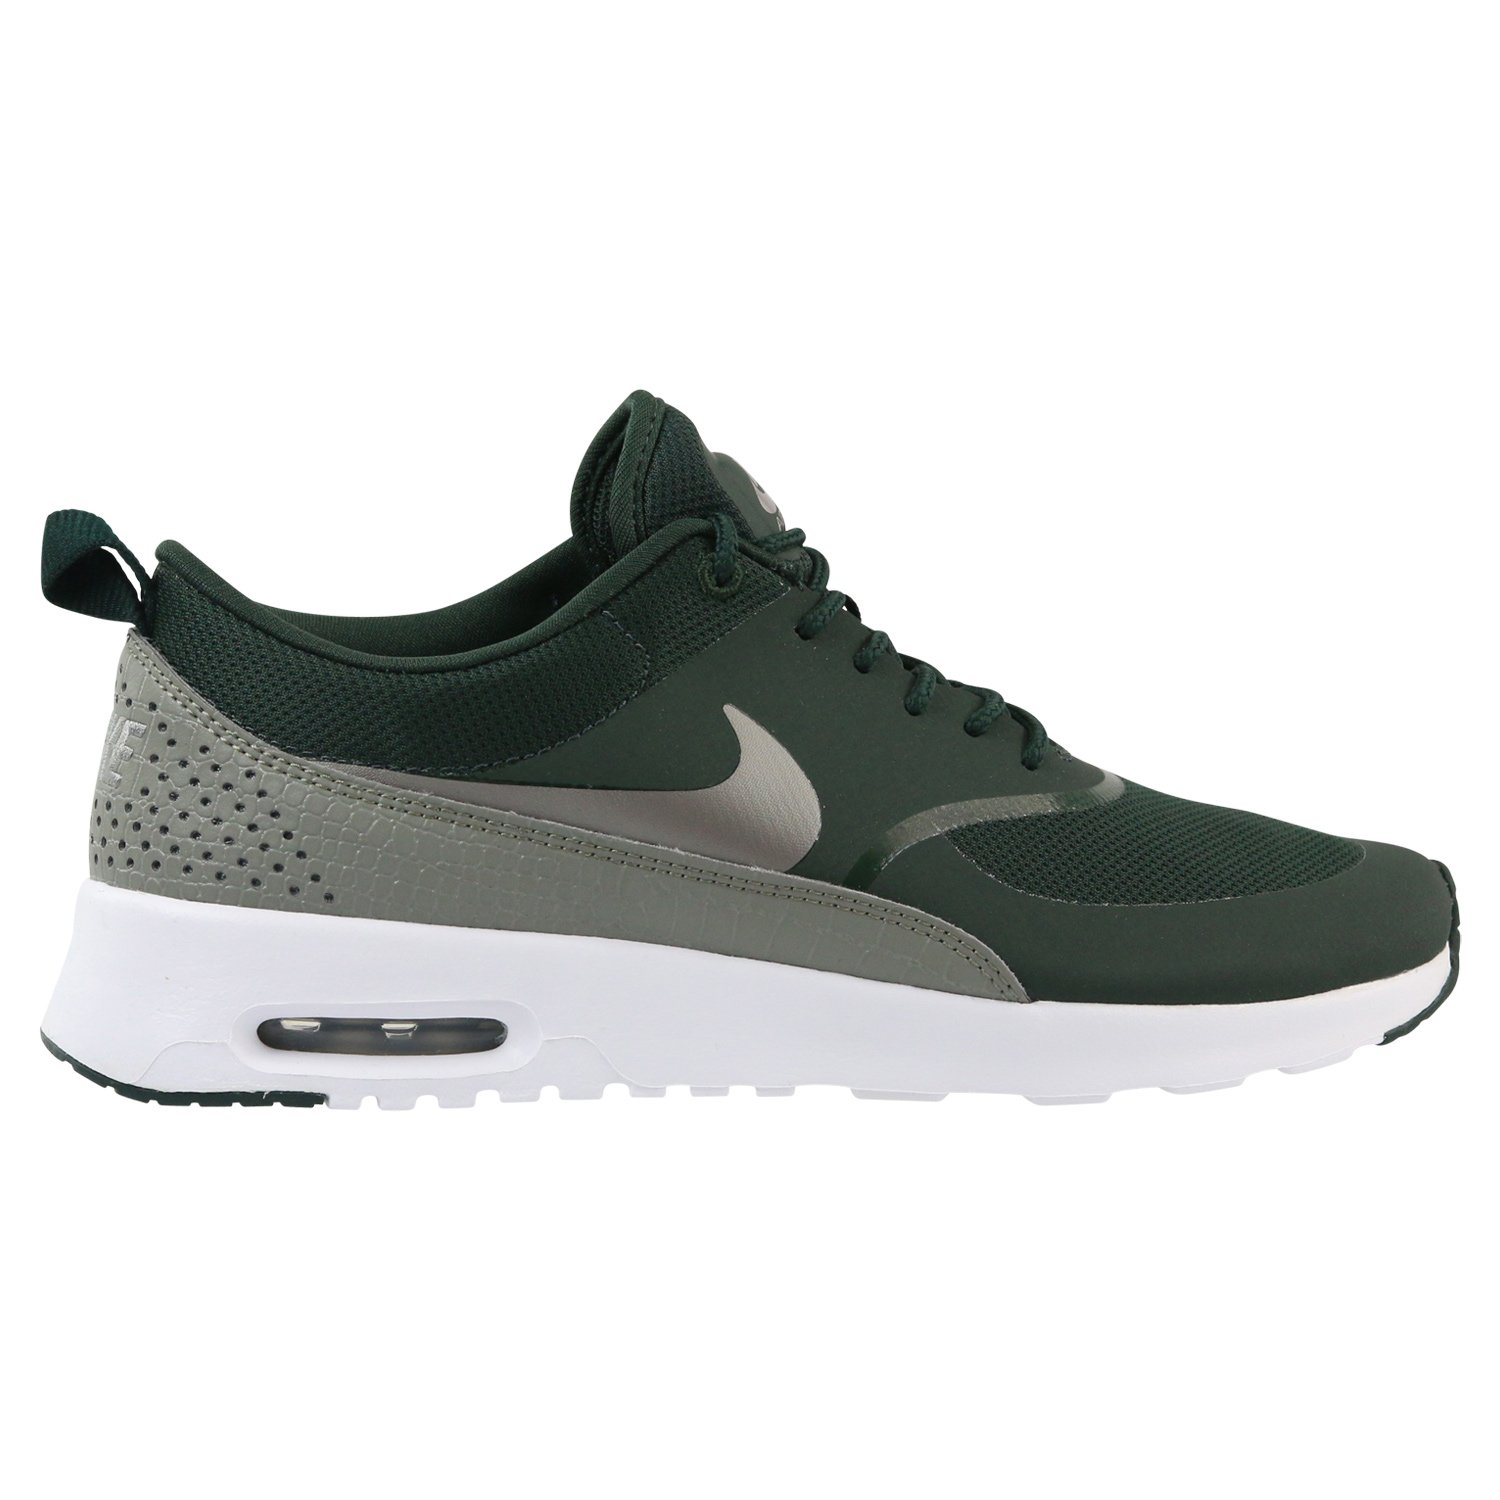 6af71111cf Nike Air Max Thea Outdoor Green Metallic Pewter Style: 599409-308 Size: 8